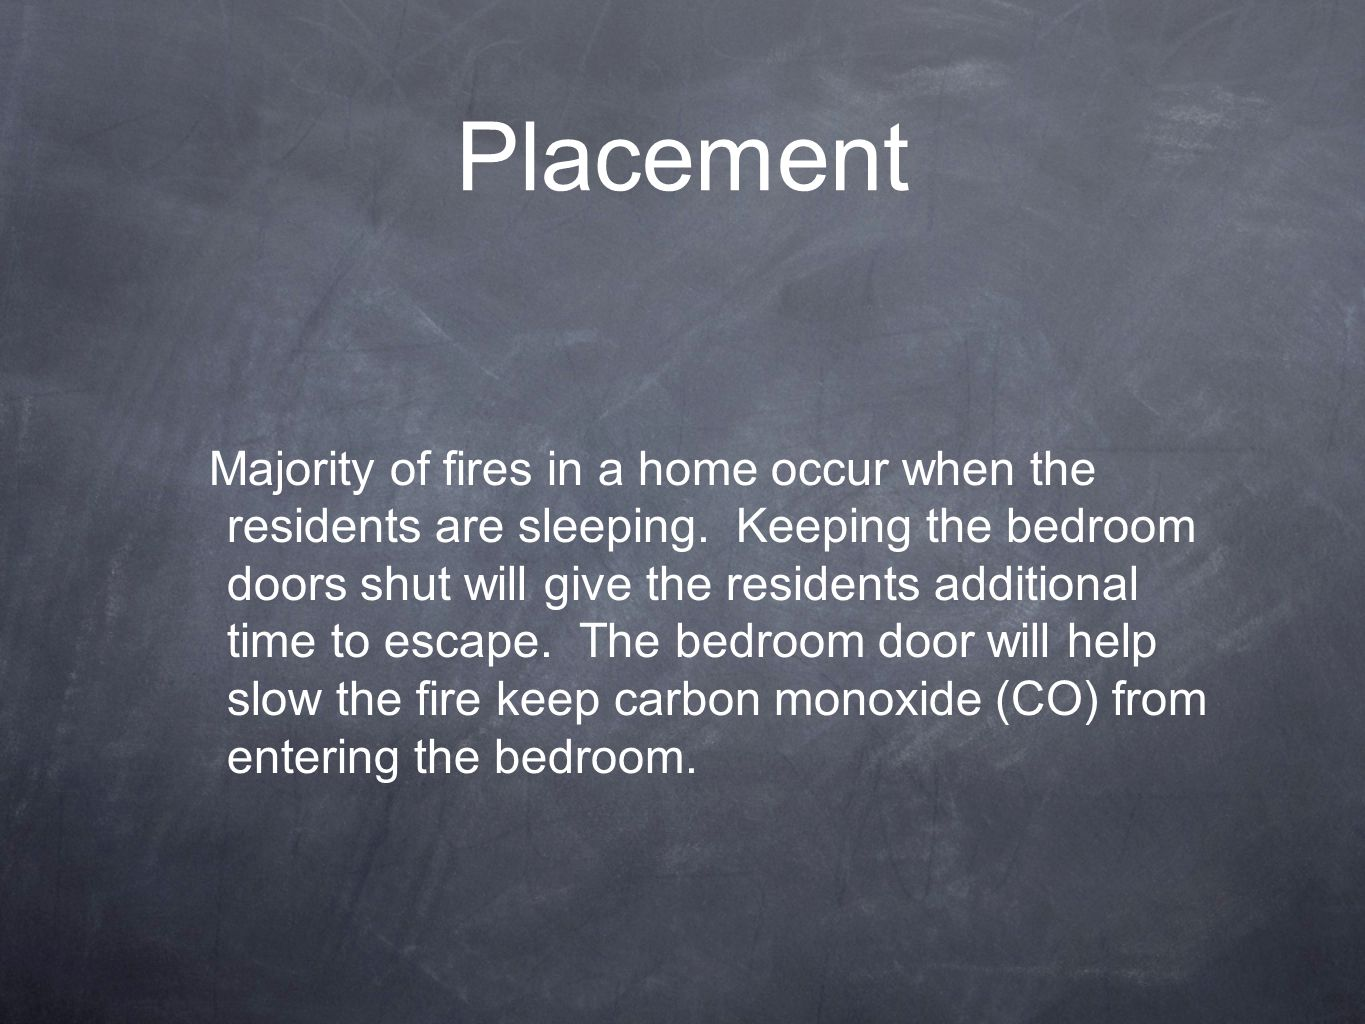 Placement Majority of fires in a home occur when the residents are sleeping.